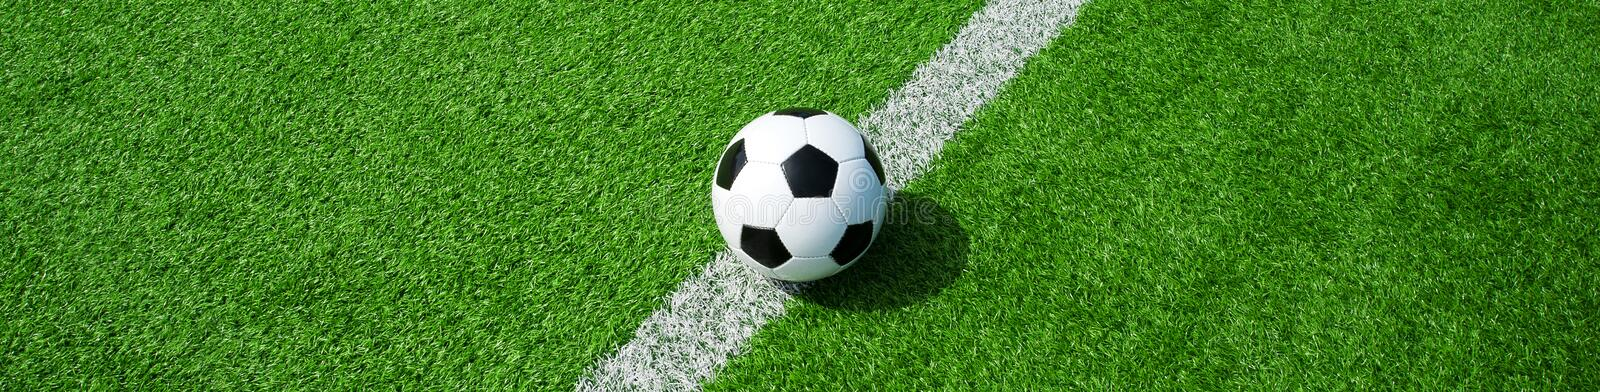 Soccer ball on green artificial grass, landscape format, for a banner. Soccer ball black and white on green artificial turf, space for text, good for banner royalty free stock photography